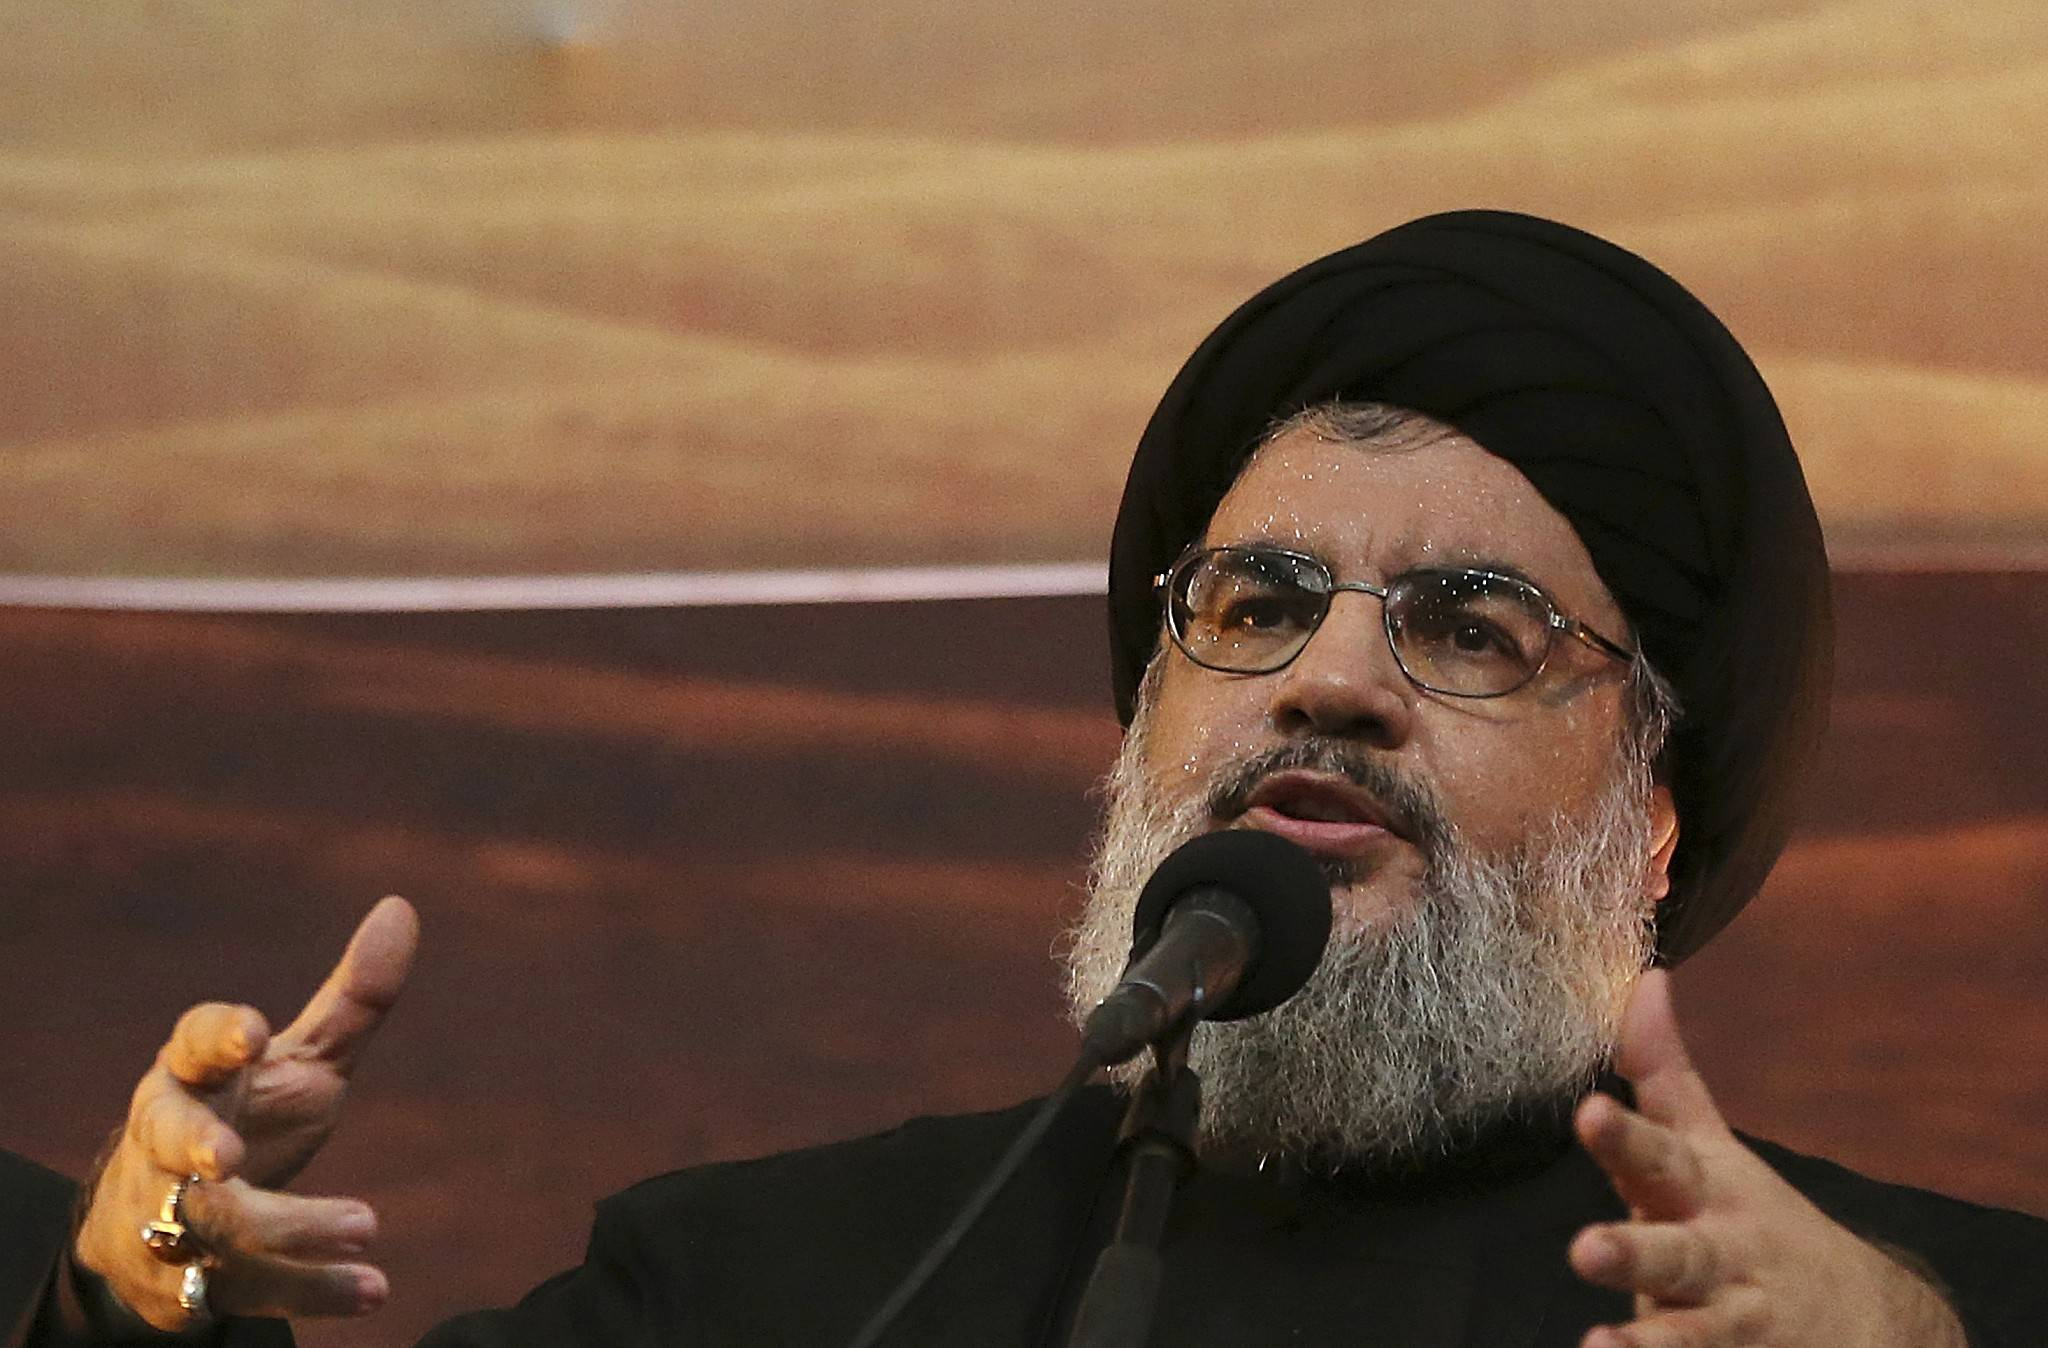 GFATF - LLL - Hezbollah leader Nasrallah threatened to blow up Israel with same chemicals as Beirut blast